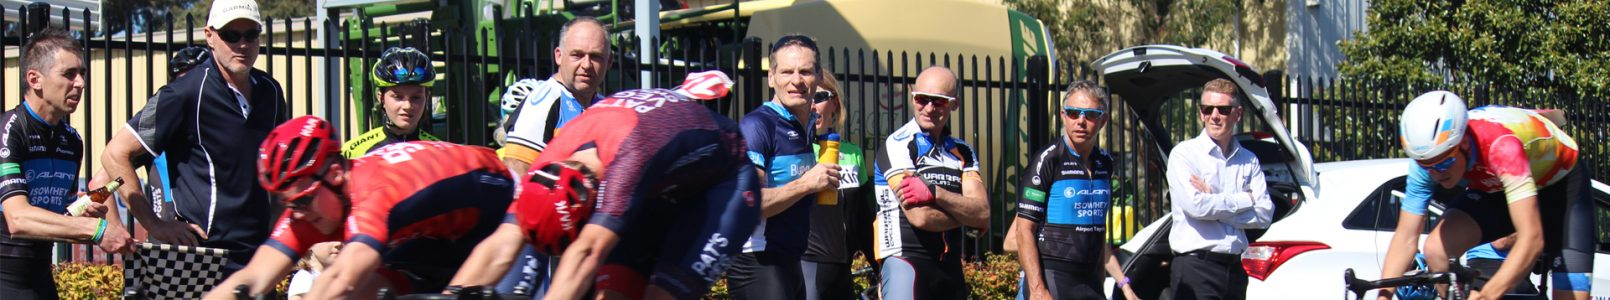 Warragul Cycling Club